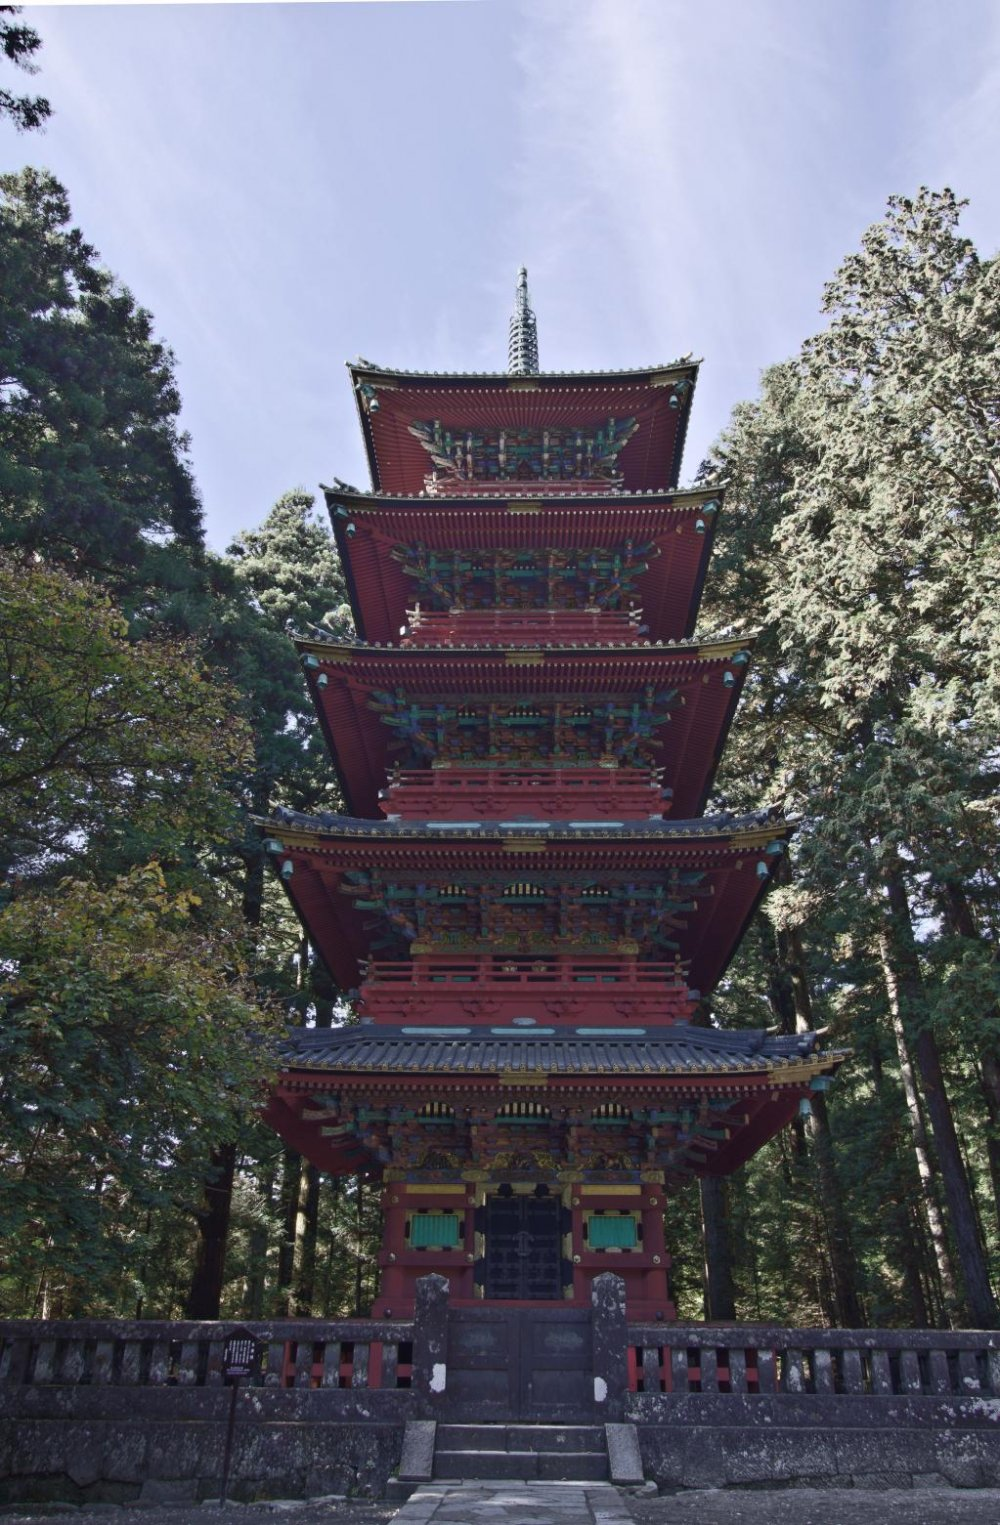 Impressive pagoda, reconstructed 1819, after the original from 1650 burned down